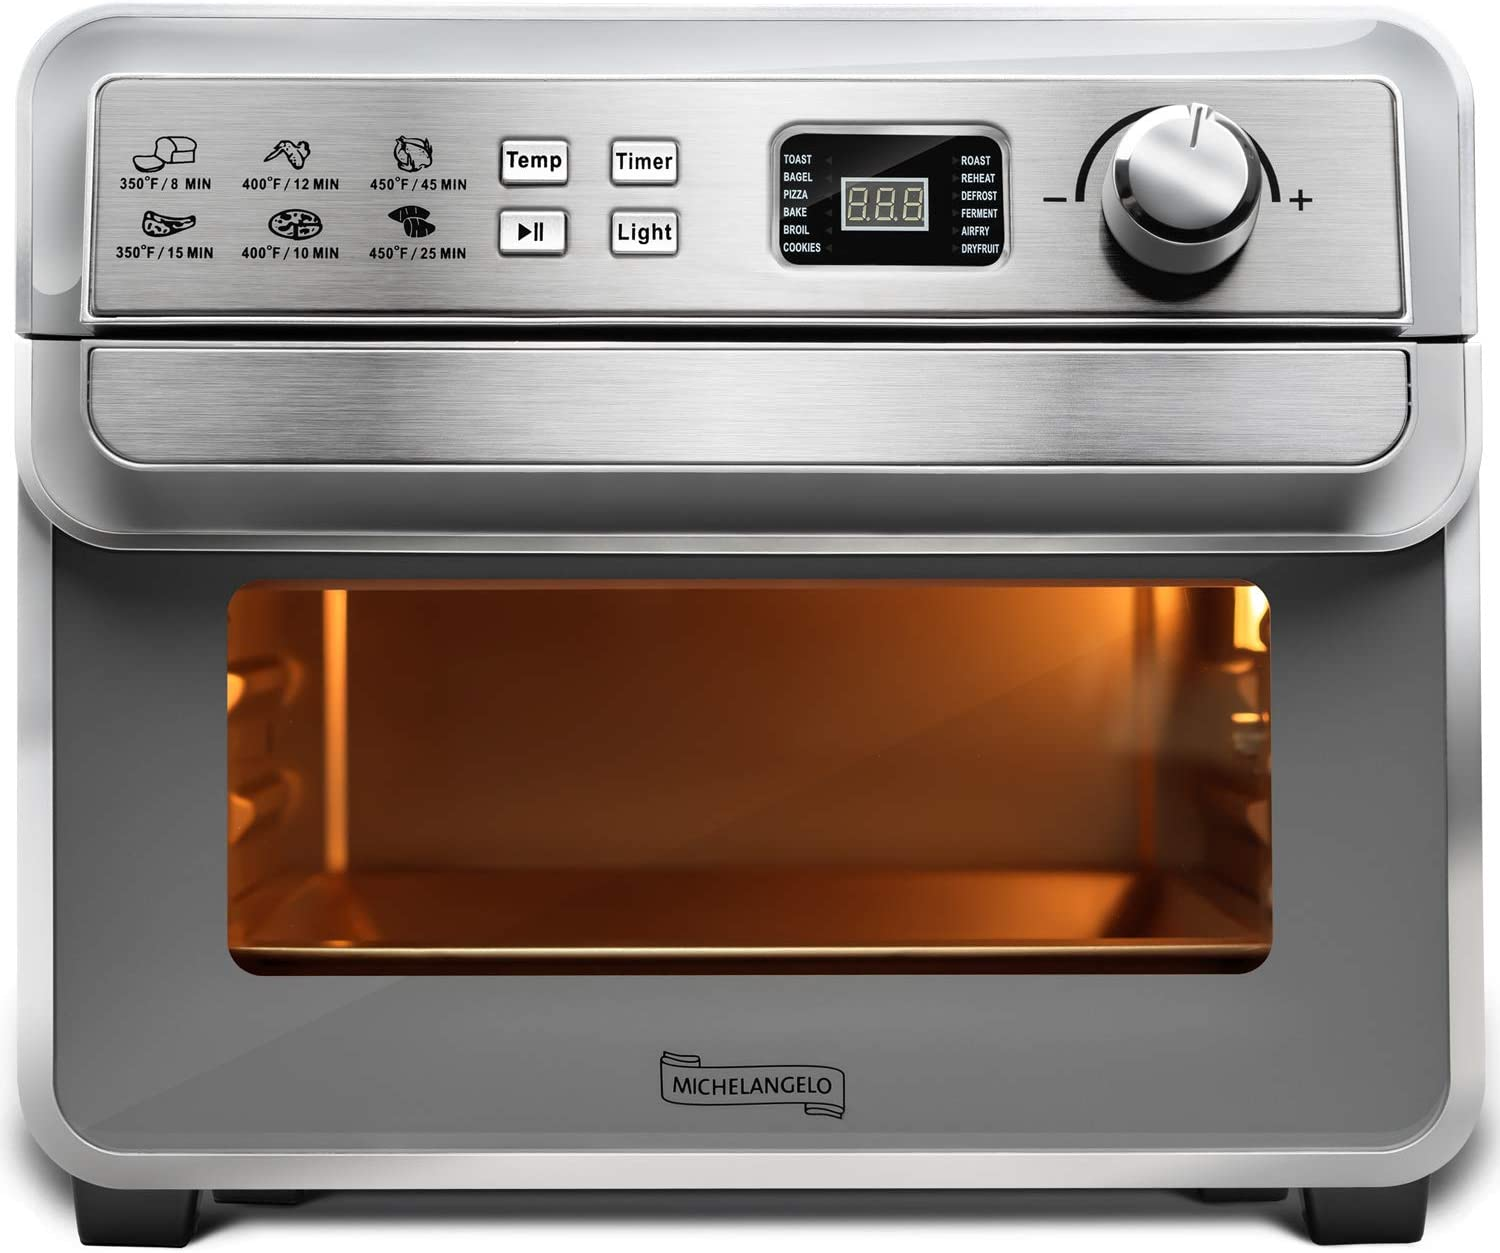 Michelangelo Air Fryer Toaster Oven Combo, Stainless Steel Air Fryer Oven Silver, Air Fryer Toaster, Bagel, Broil, Bake, Pizz Reheat, 22L Large Air Fry Toaster, 1700W